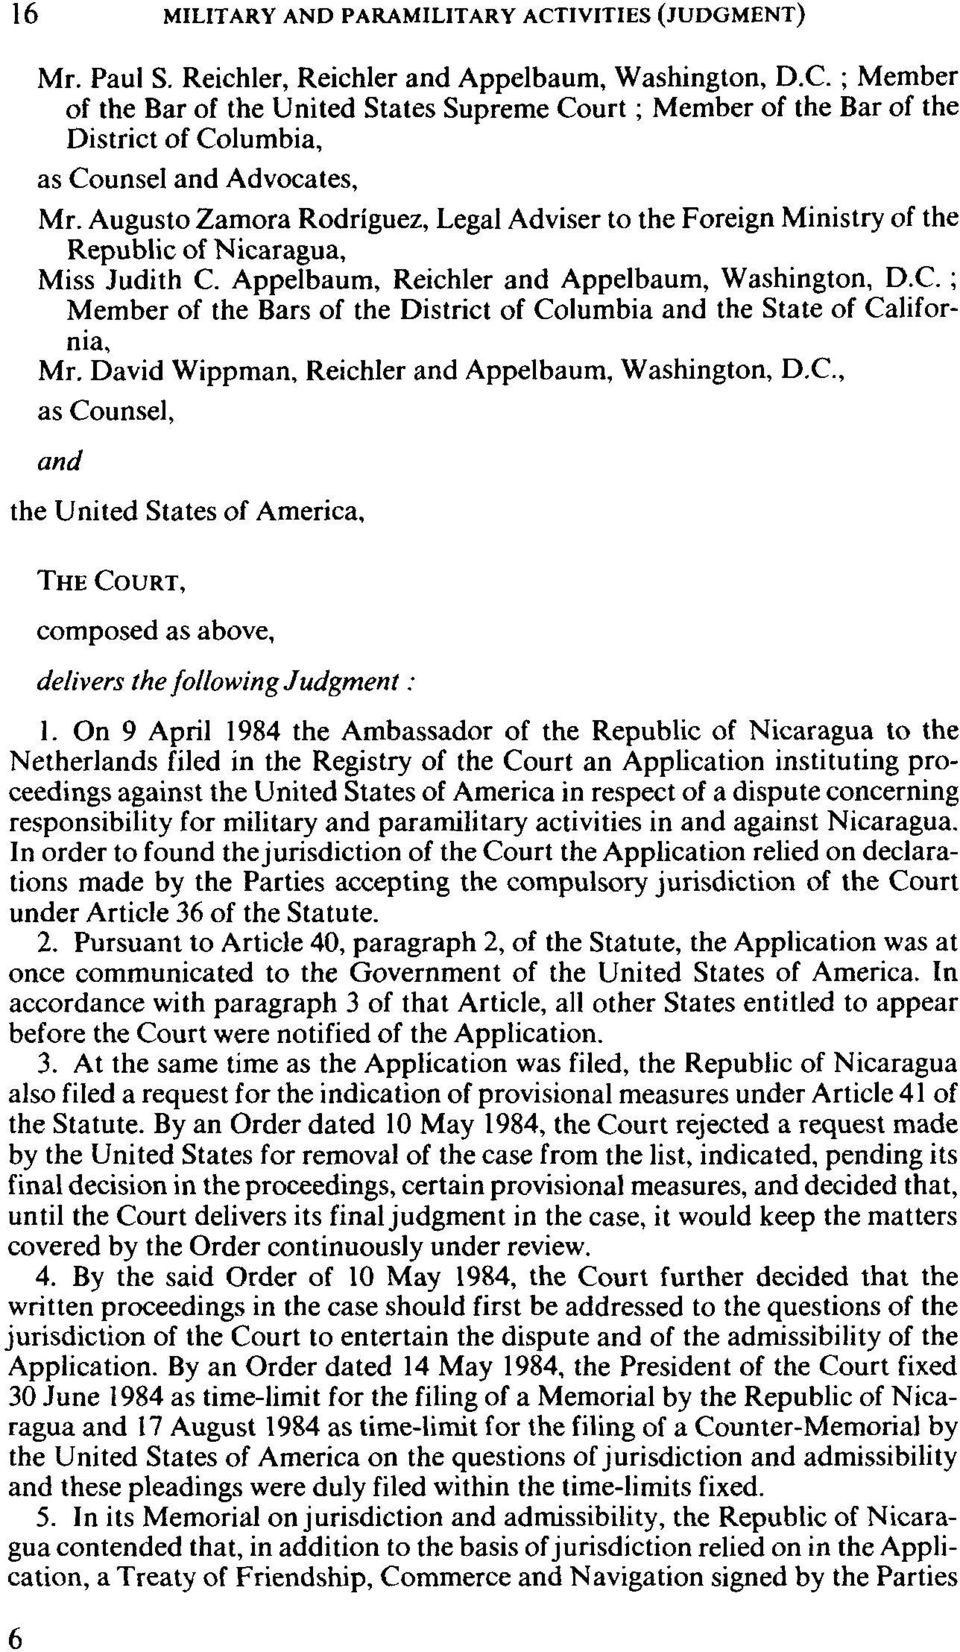 David Wippman, Reichler and Appelbaum, Washington, D.C., as Counsel, and the United States of America, composed as above, delivers the following Judgment : 1.